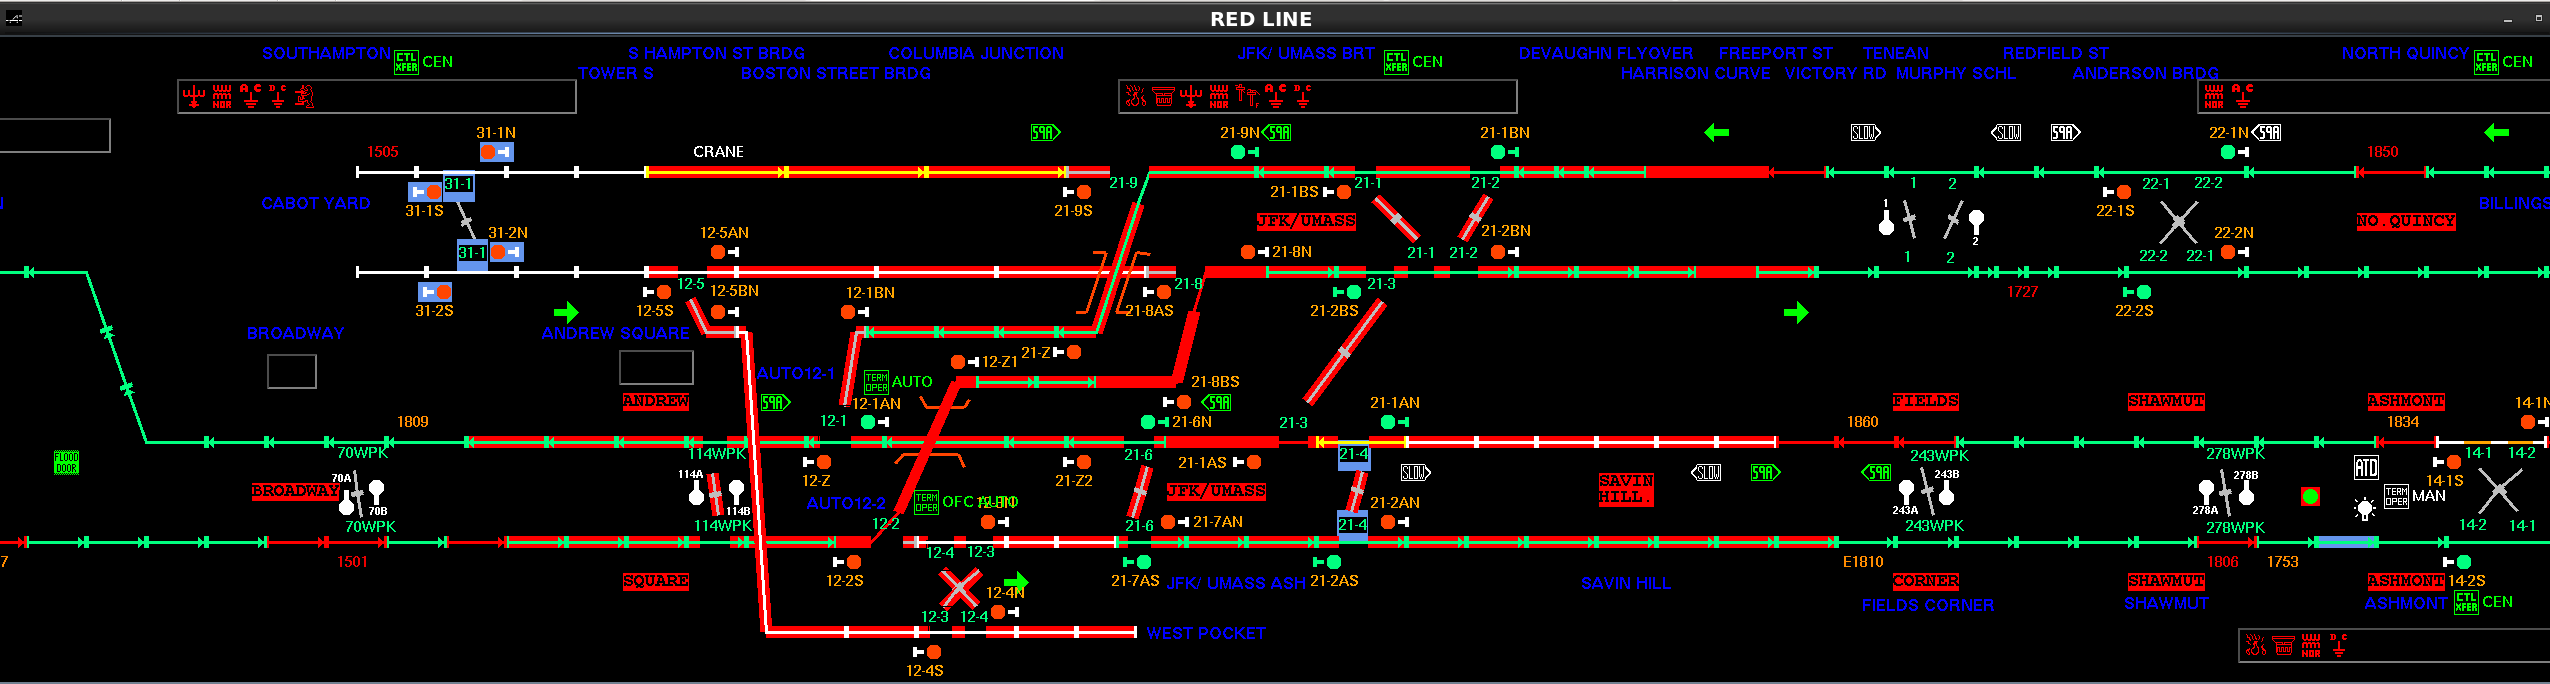 The screen at the Operations Control Center after the derailment, showing multiple areas highlighted in red, indicating code failure for signals and switches on the Red Line.